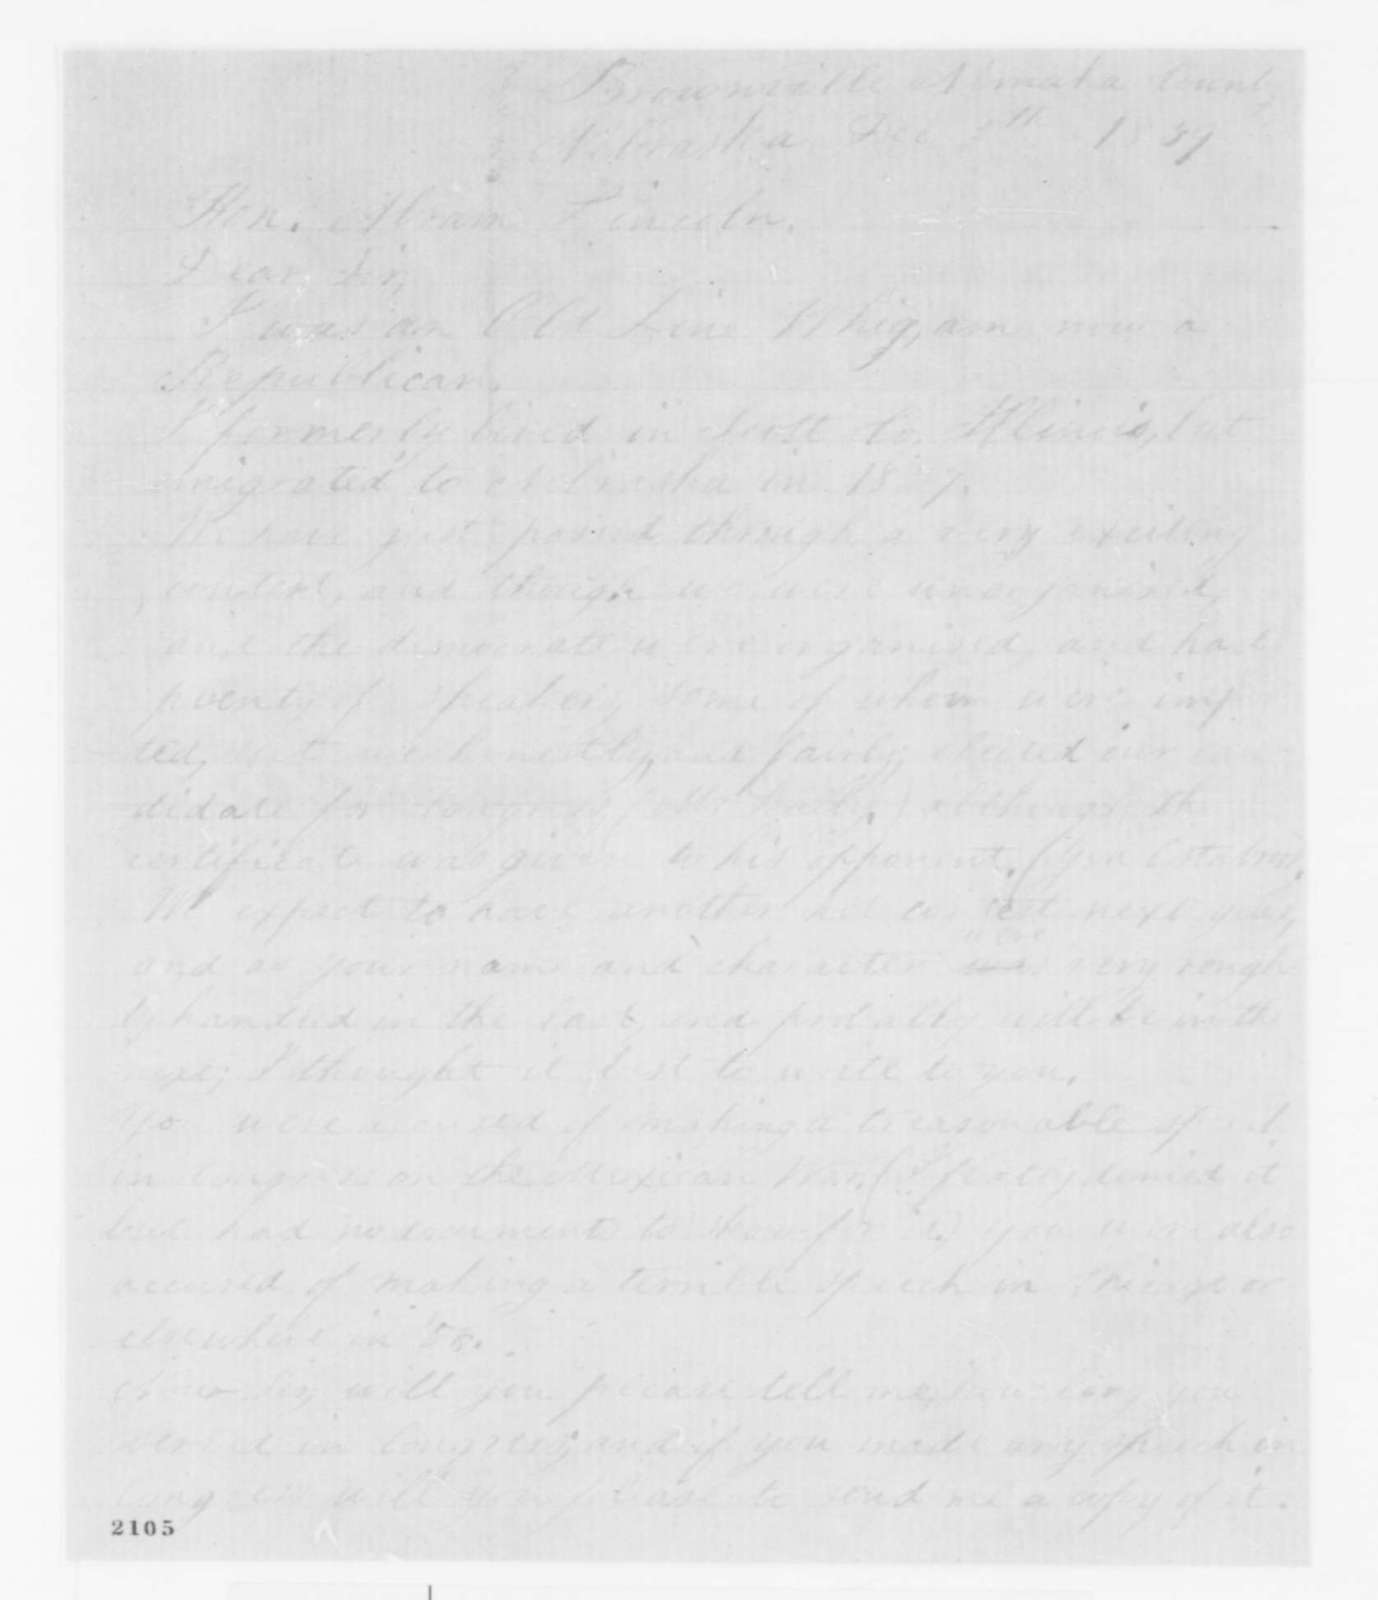 W. A. Polock to Abraham Lincoln, Monday, December 05, 1859